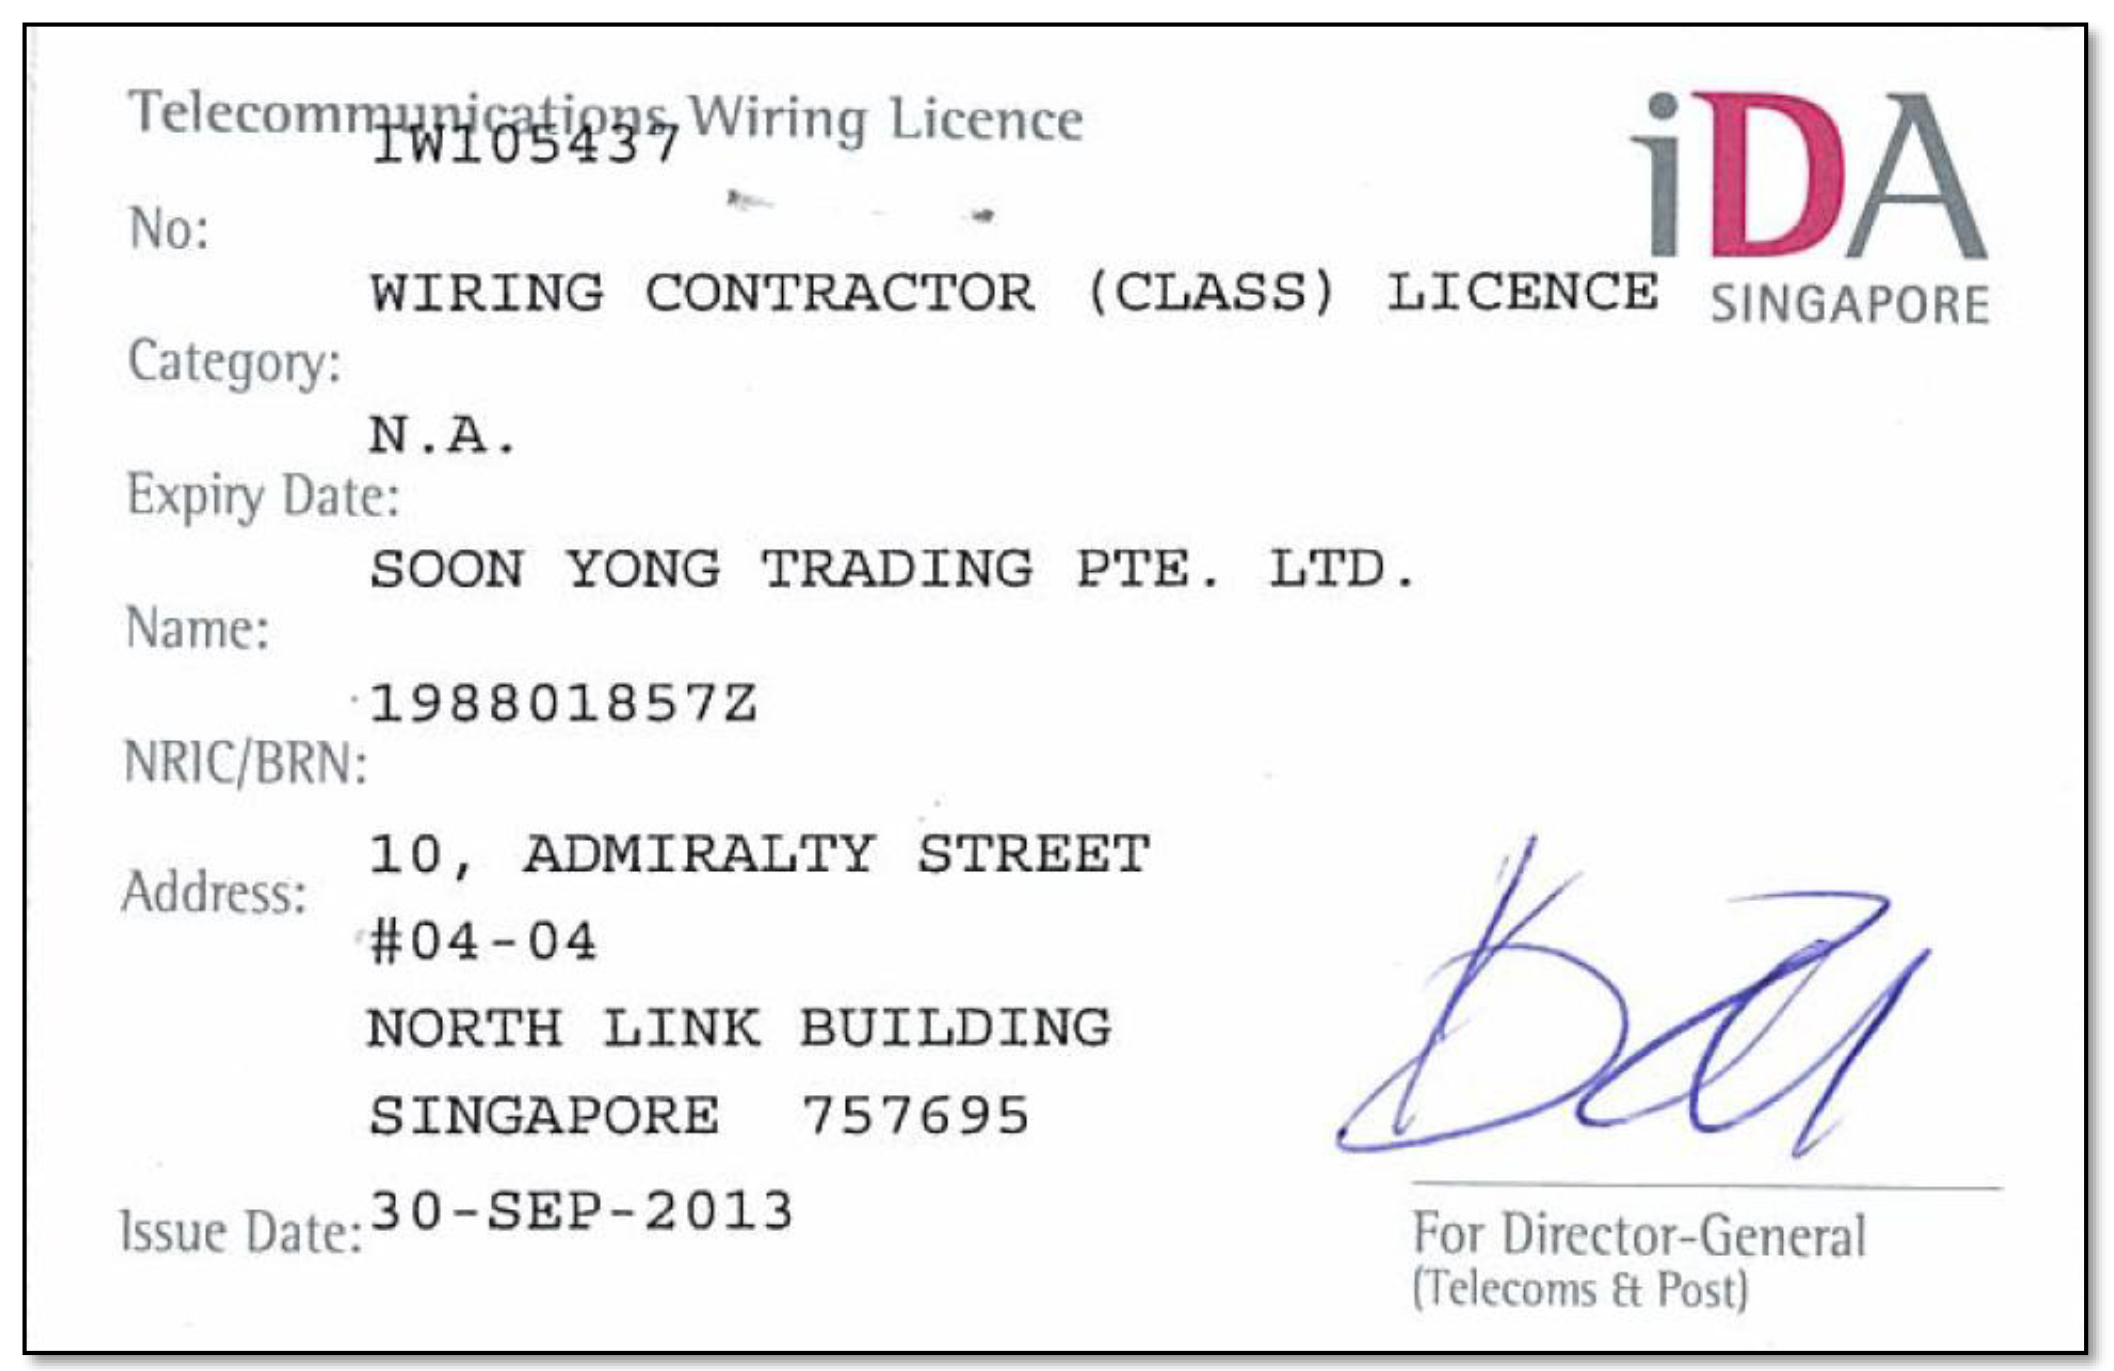 IDA-WIRING CONTRACTOR (CLASS) LICENCE SINGAPORE - ISSUE 30.09